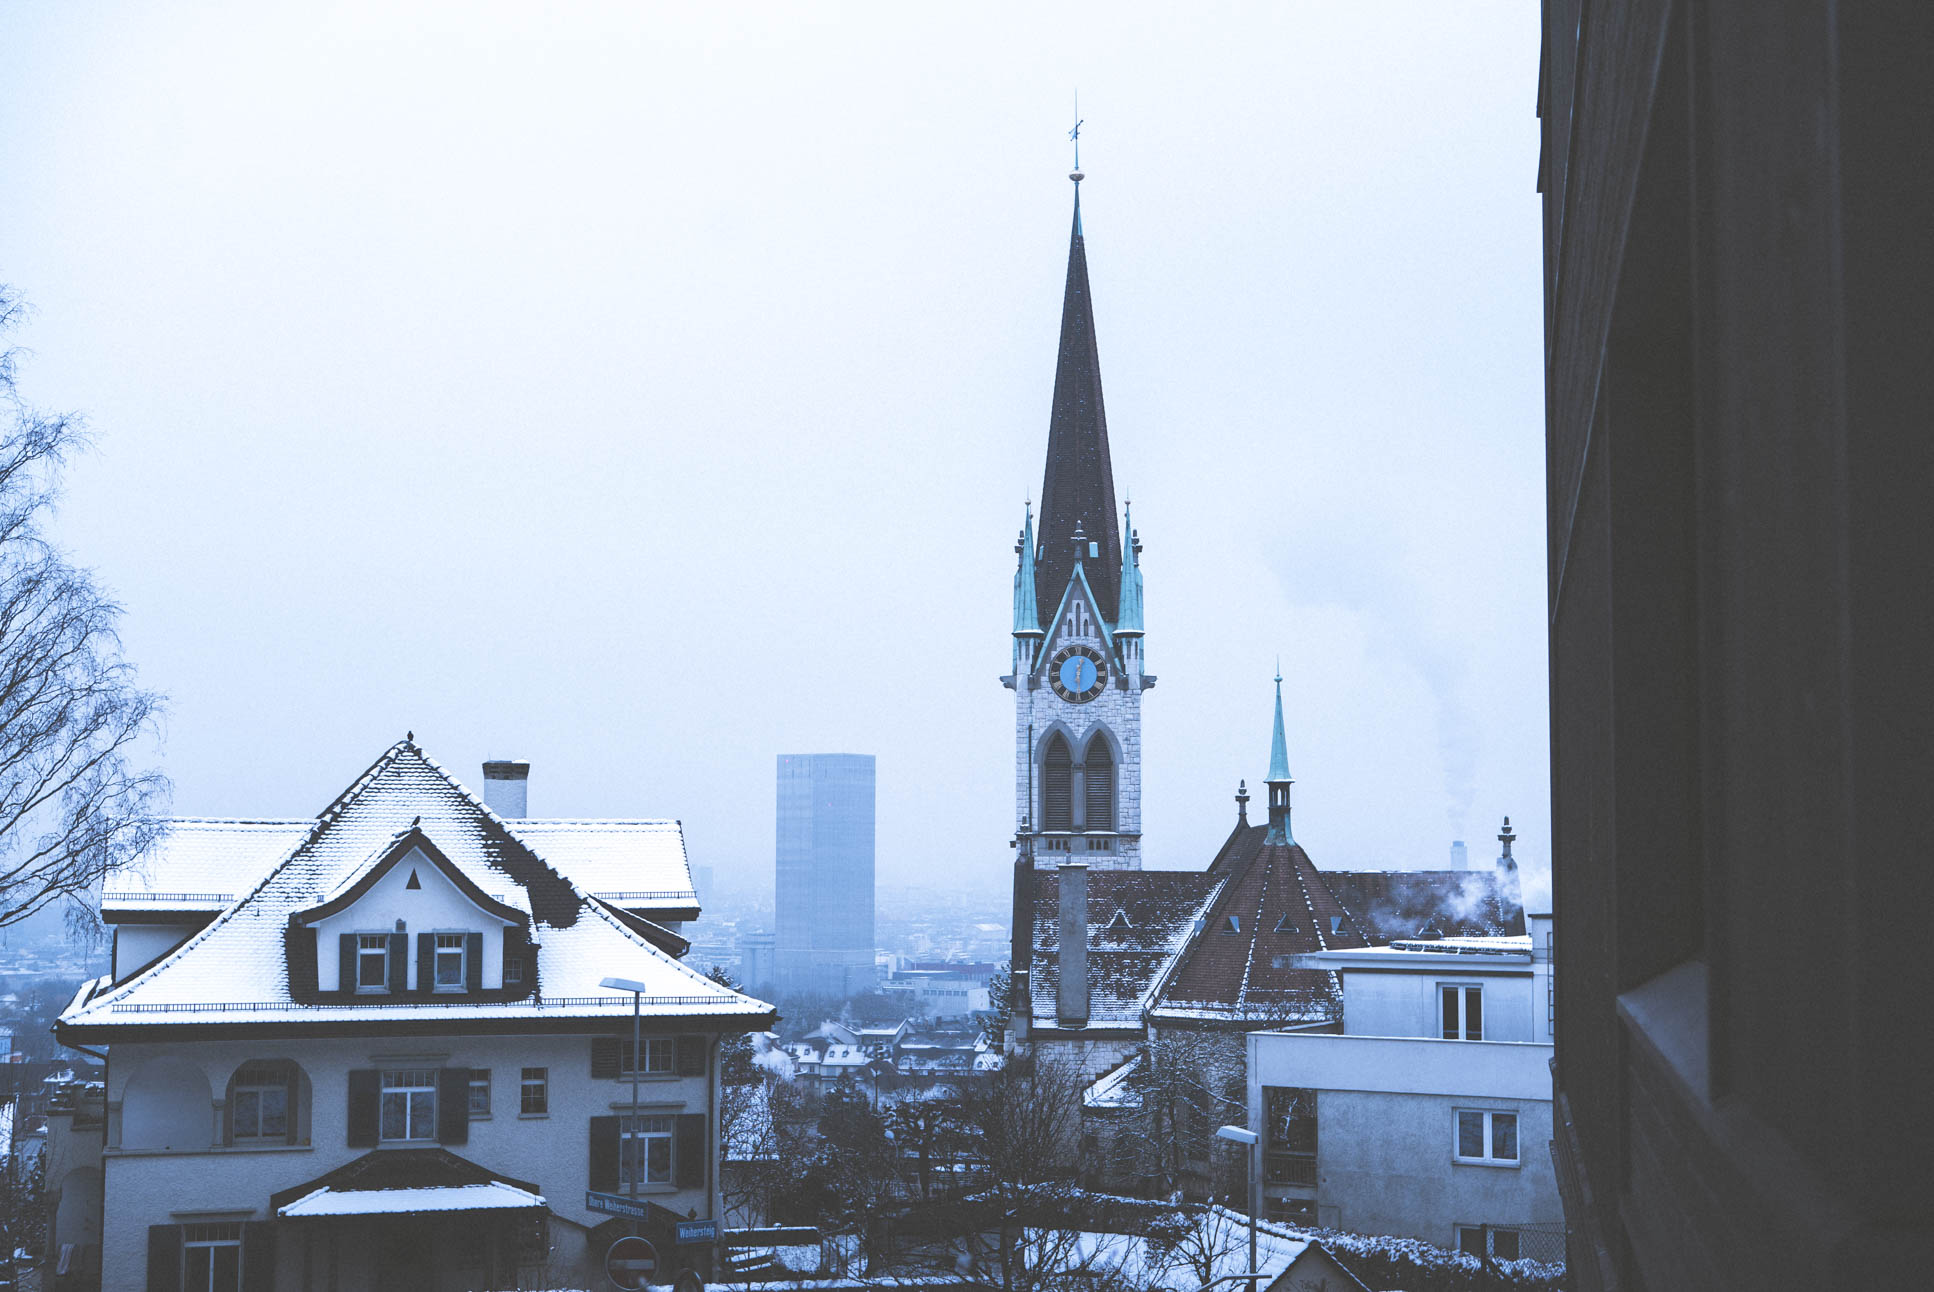 Photo by Pascal Sommer - Kirche Wipkingen